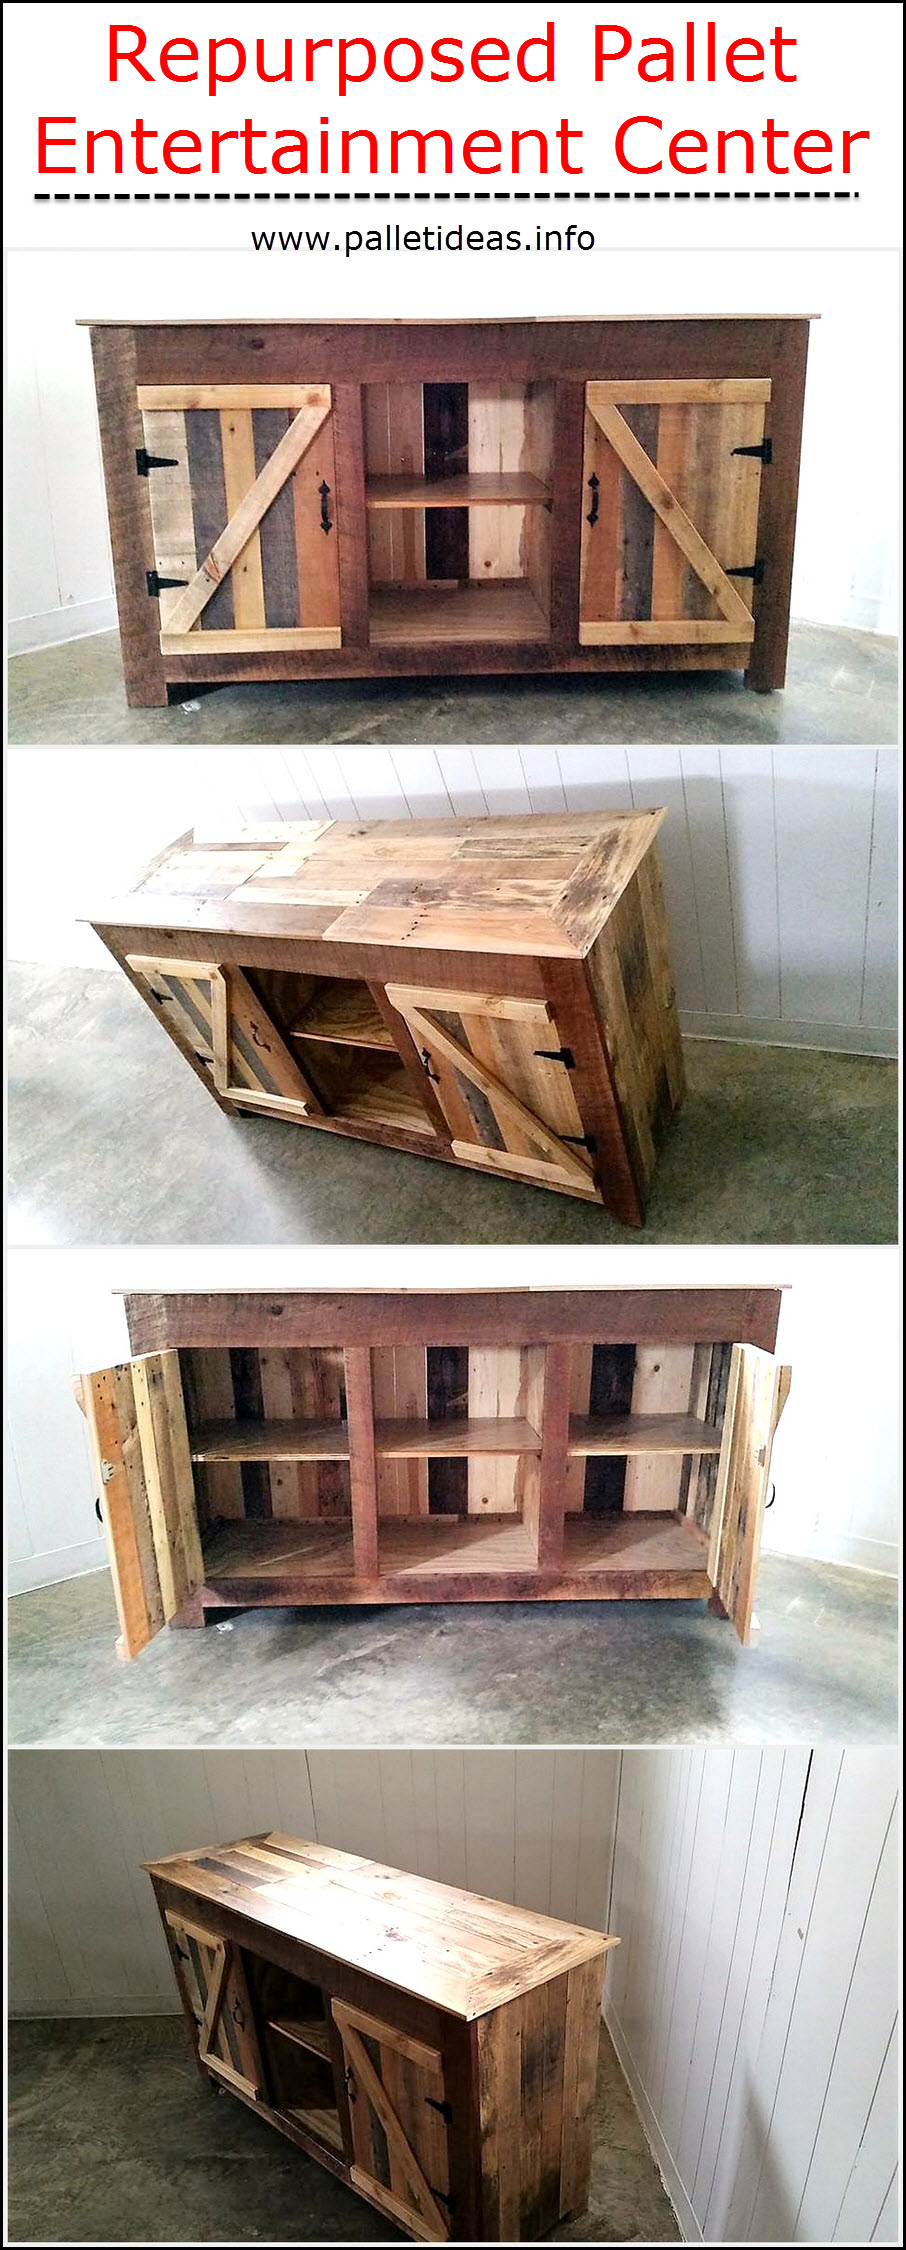 repurposed-pallet-entertainment-center